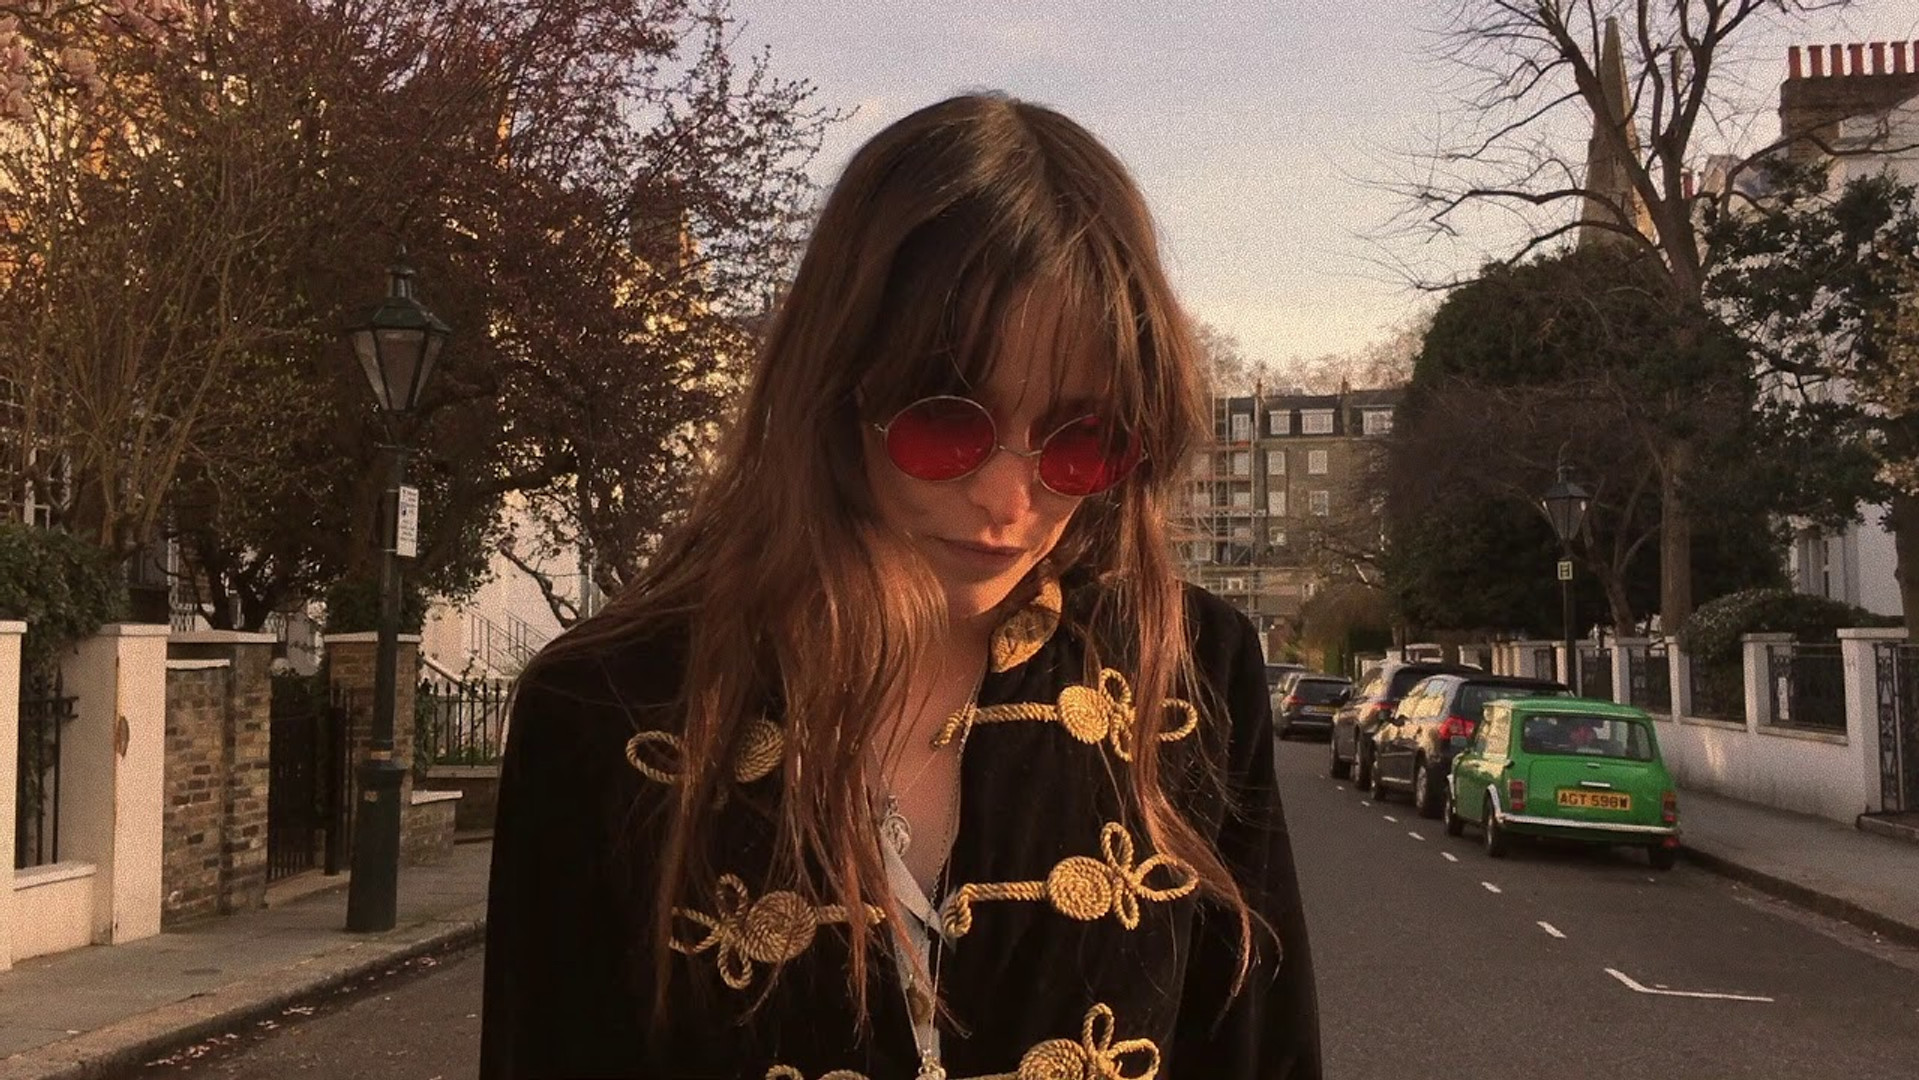 Tess Parks & Anton Newcombe - Right On - 2018